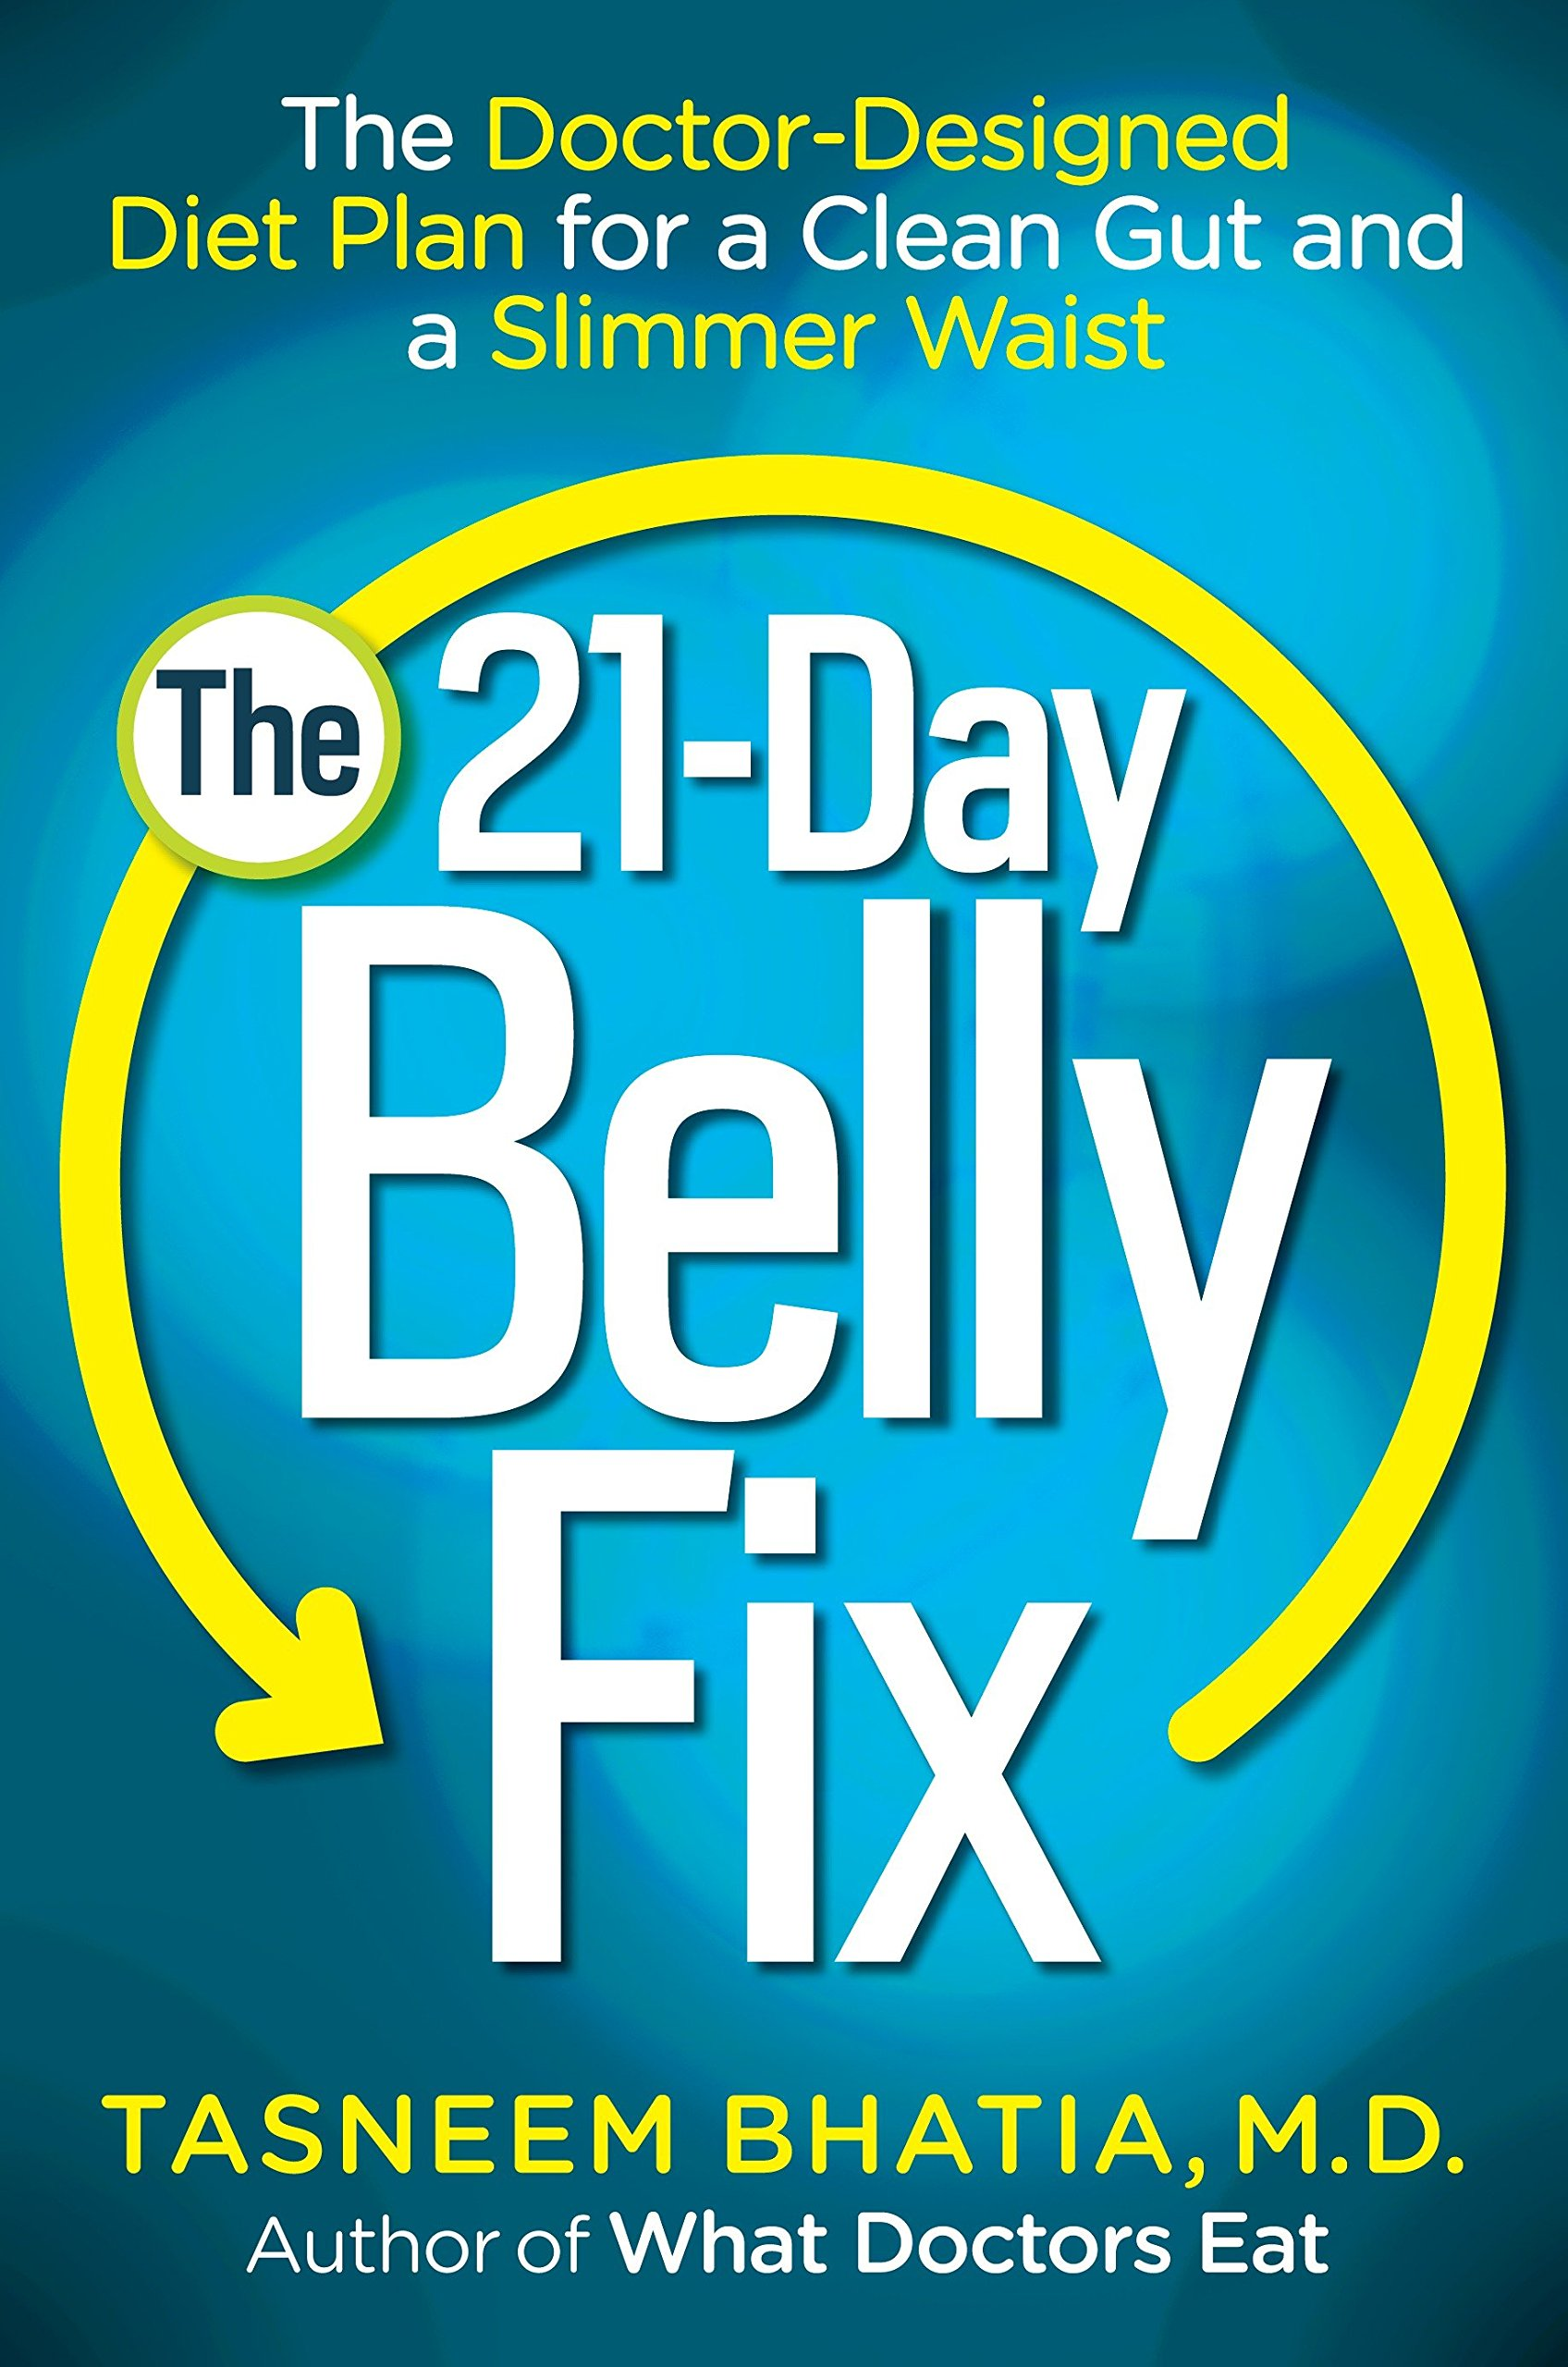 The 21-Day Belly Fix: The Doctor-Designed Diet Plan for a Clean Gut and a  Slimmer Waist: Dr. Tasneem Bhatia: 0783324864892: Amazon.com: Books